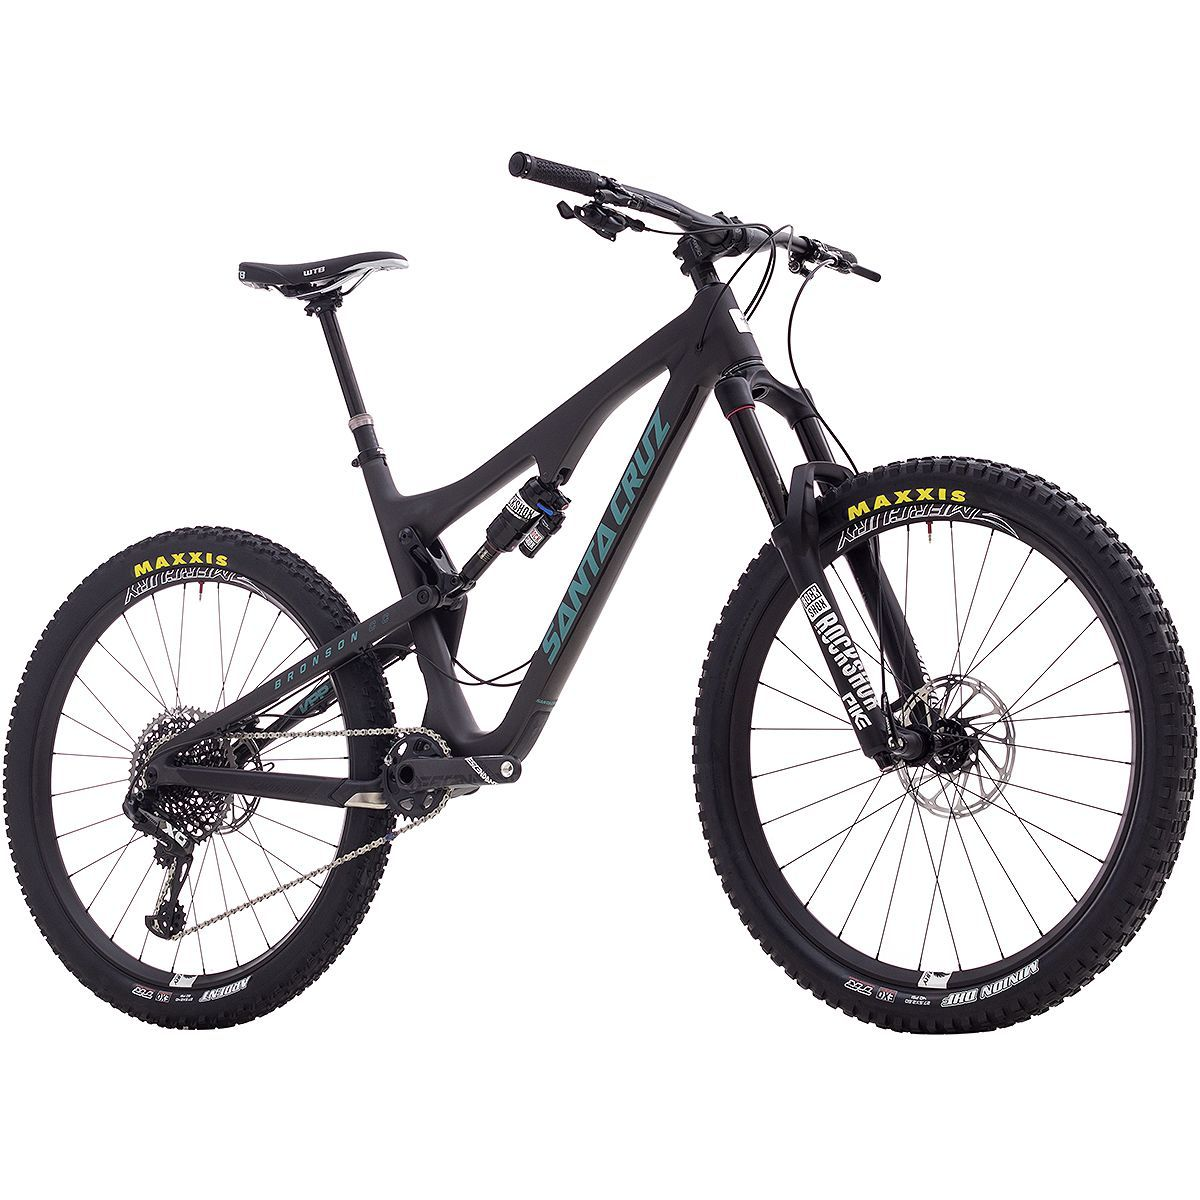 Santa Cruz Bronson CC X01 Eagle Complete Bike 2017 black